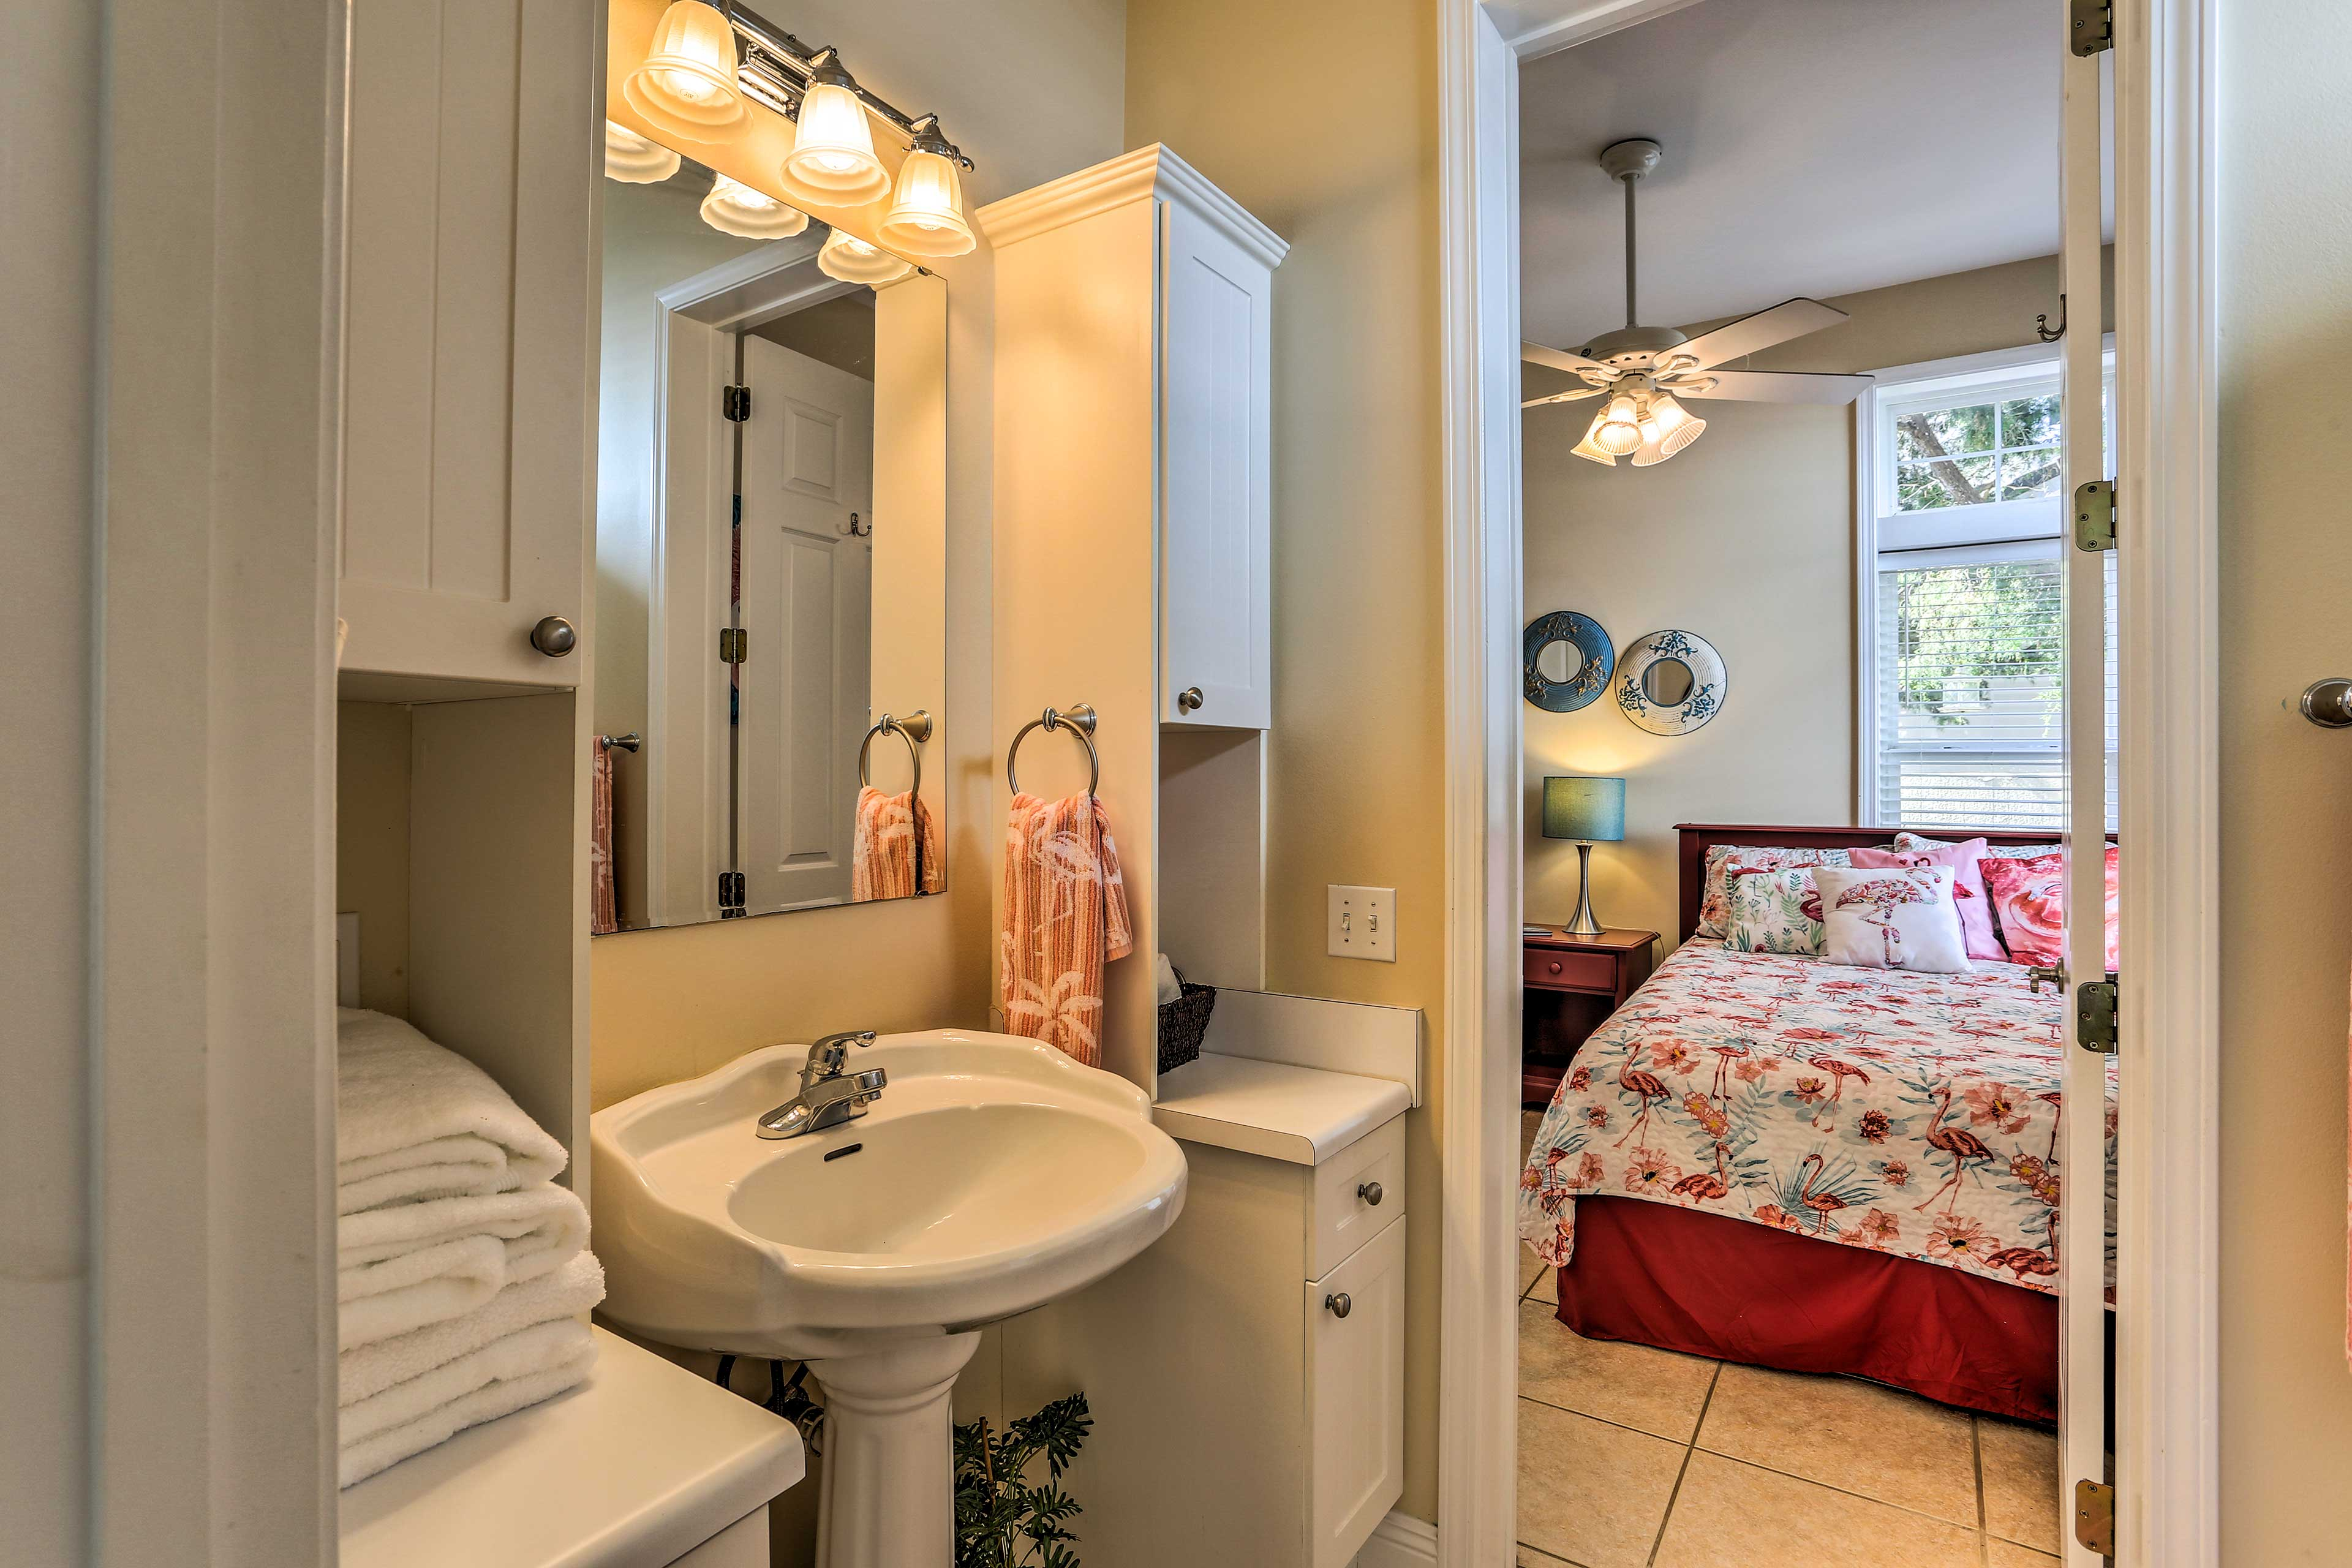 This en-suite bathroom makes it convenient to go in the middle of the ngiht.